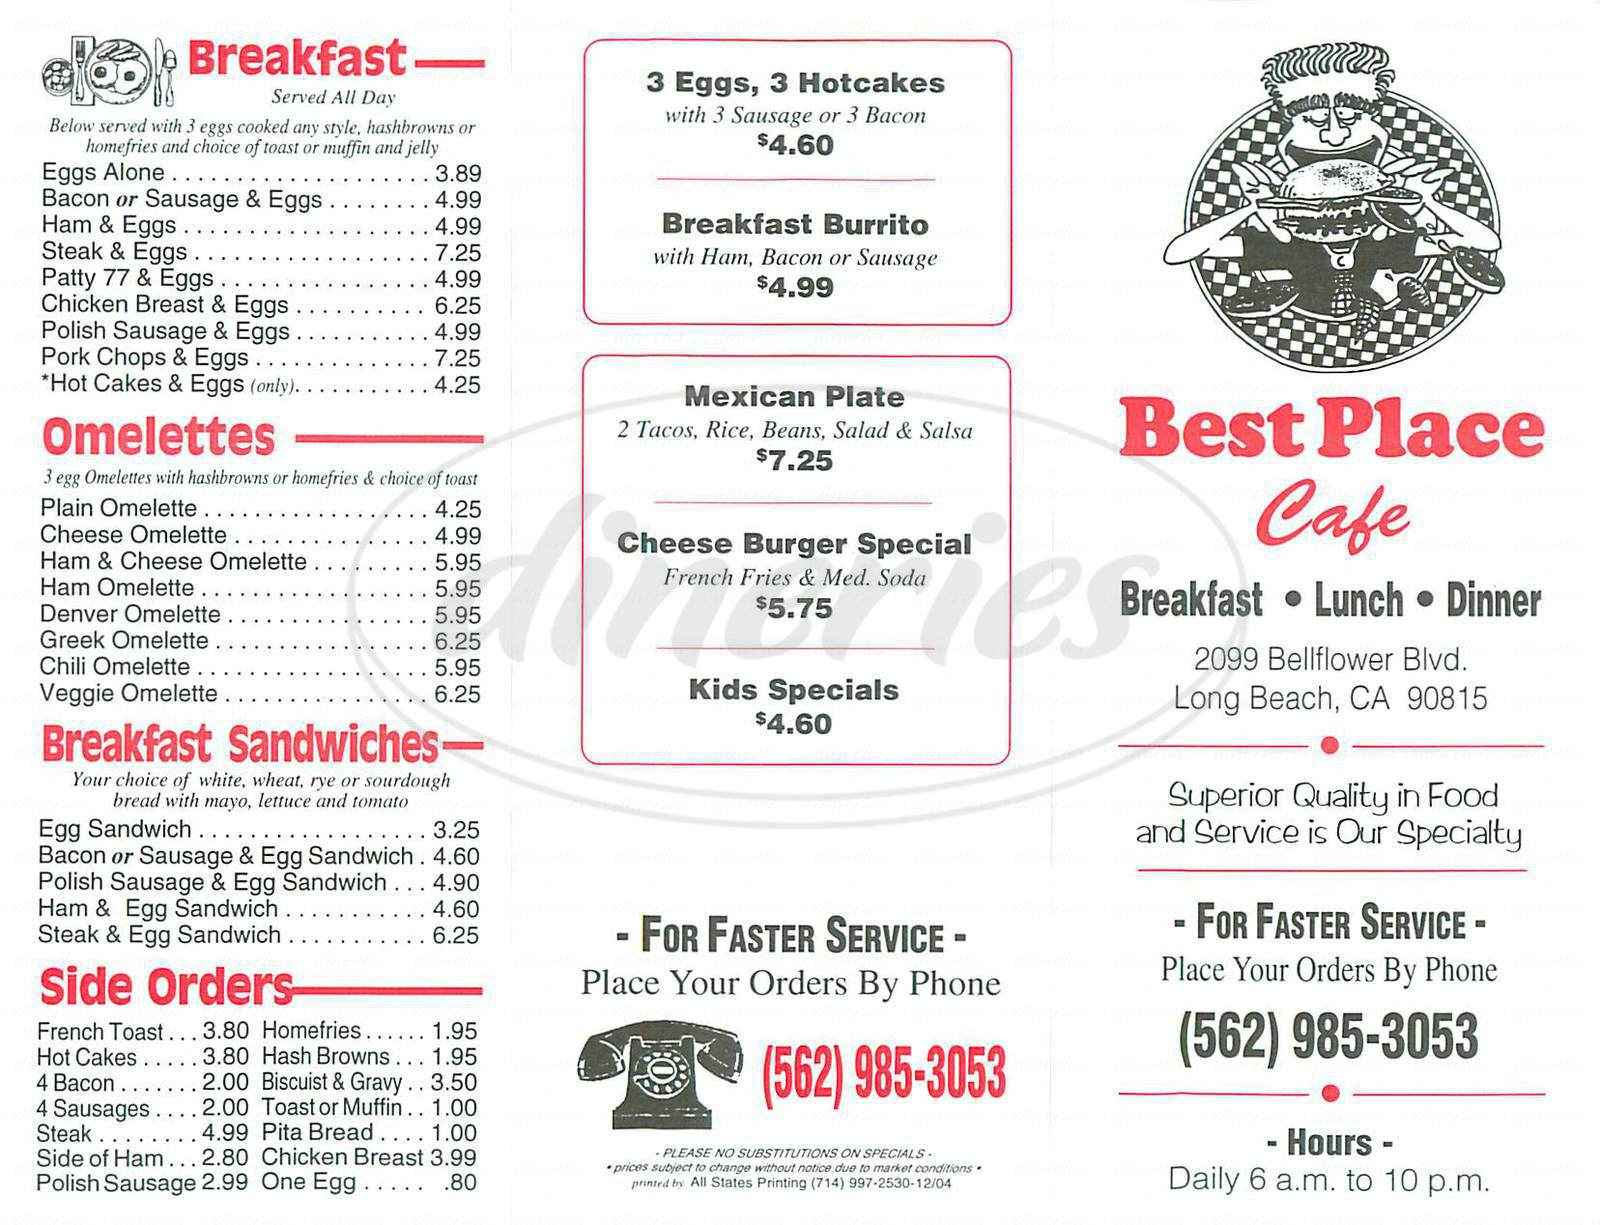 menu for Best Place Café